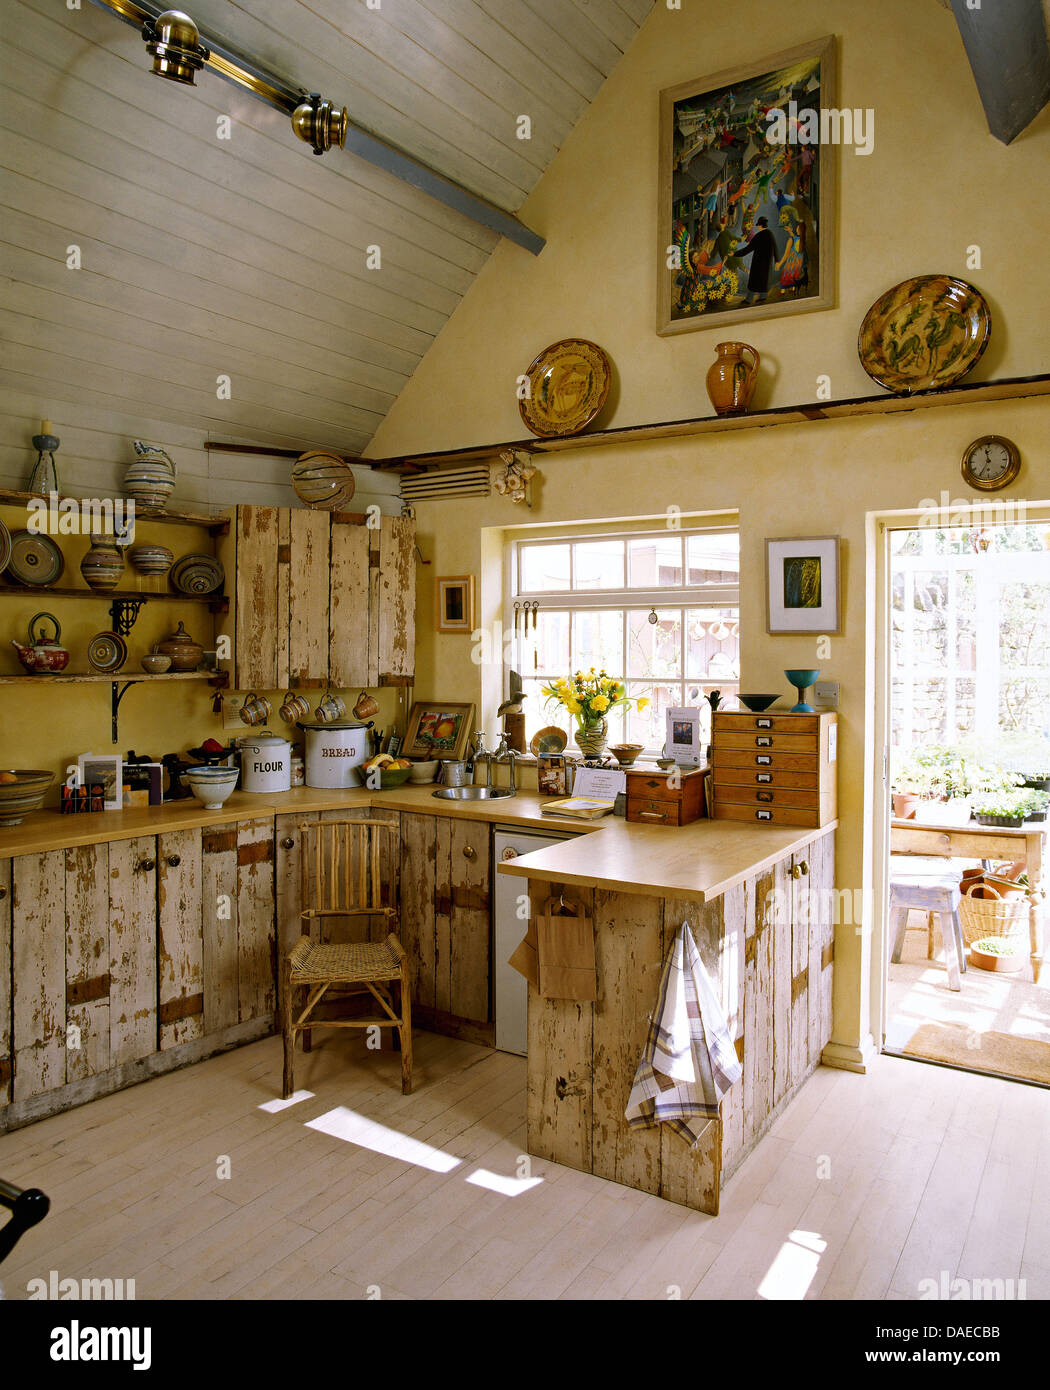 rustic country kitchen with